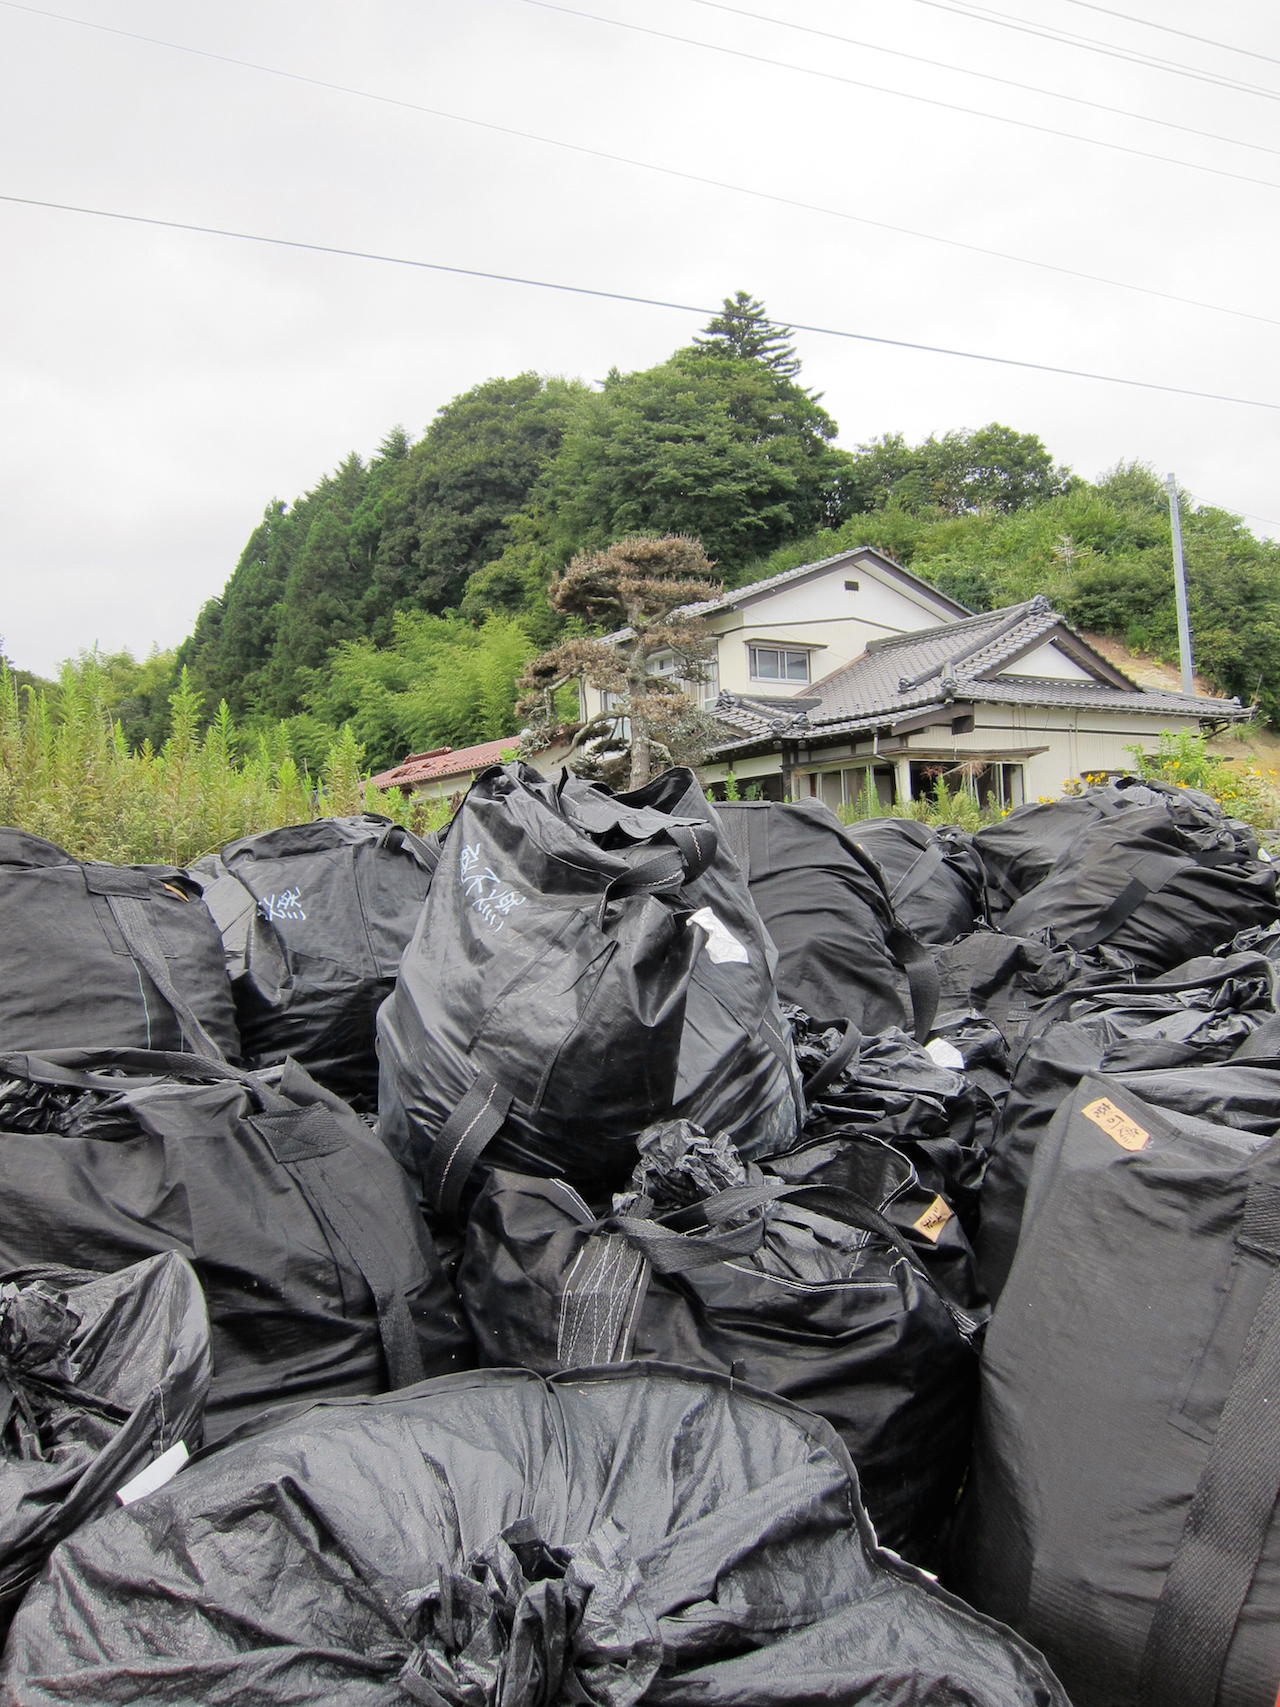 Bags of nuclear waste in the Fukushima Exclusion Zone